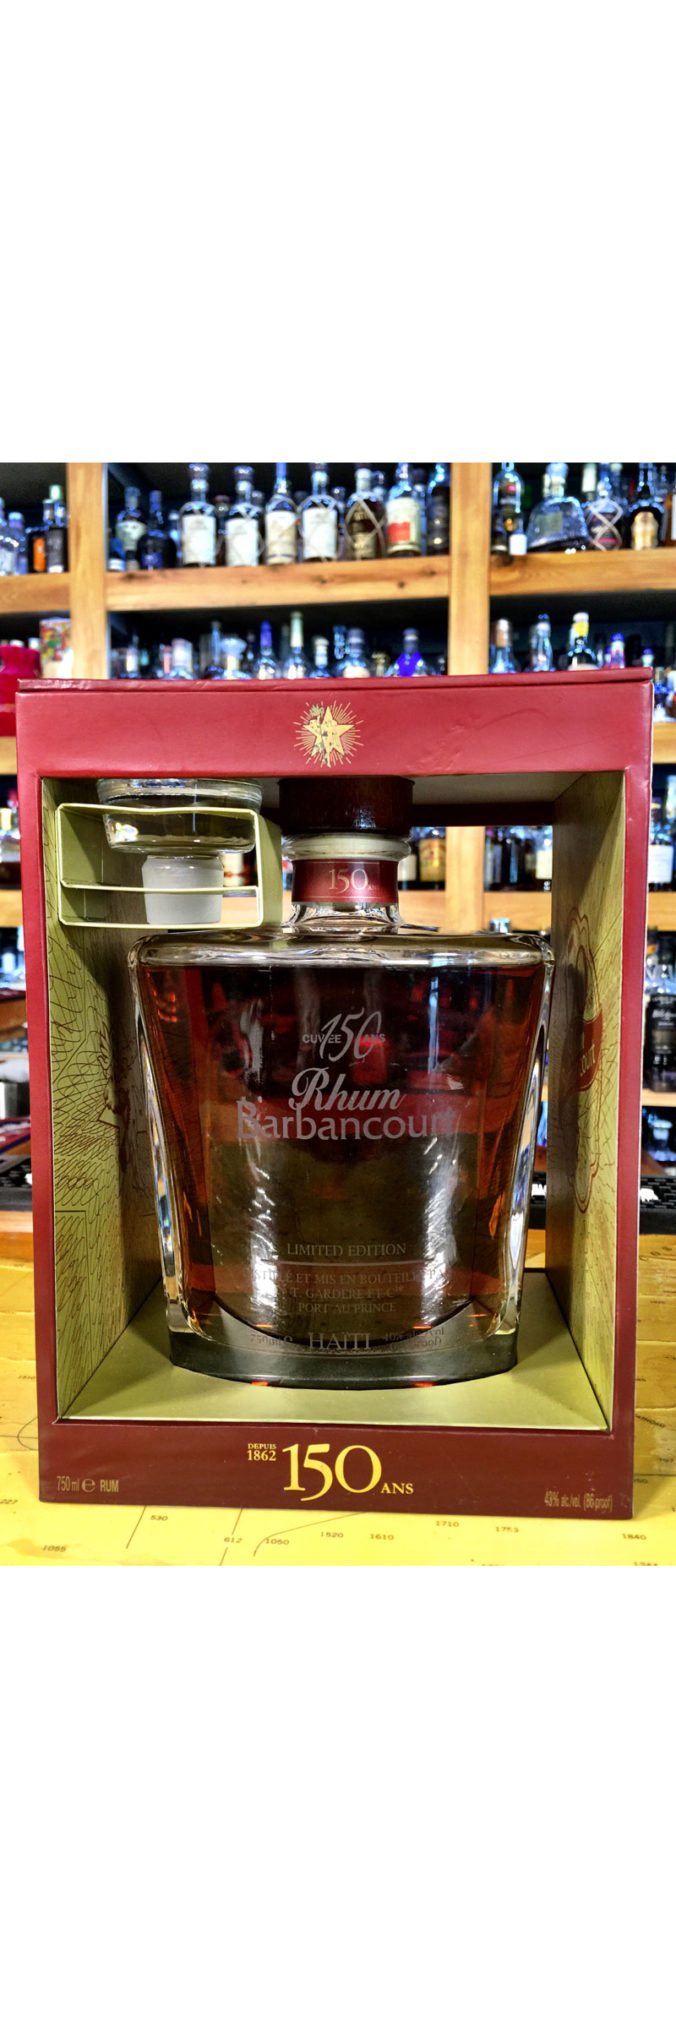 Barbancourt 150th Anniversary special Edition rum from Haiti